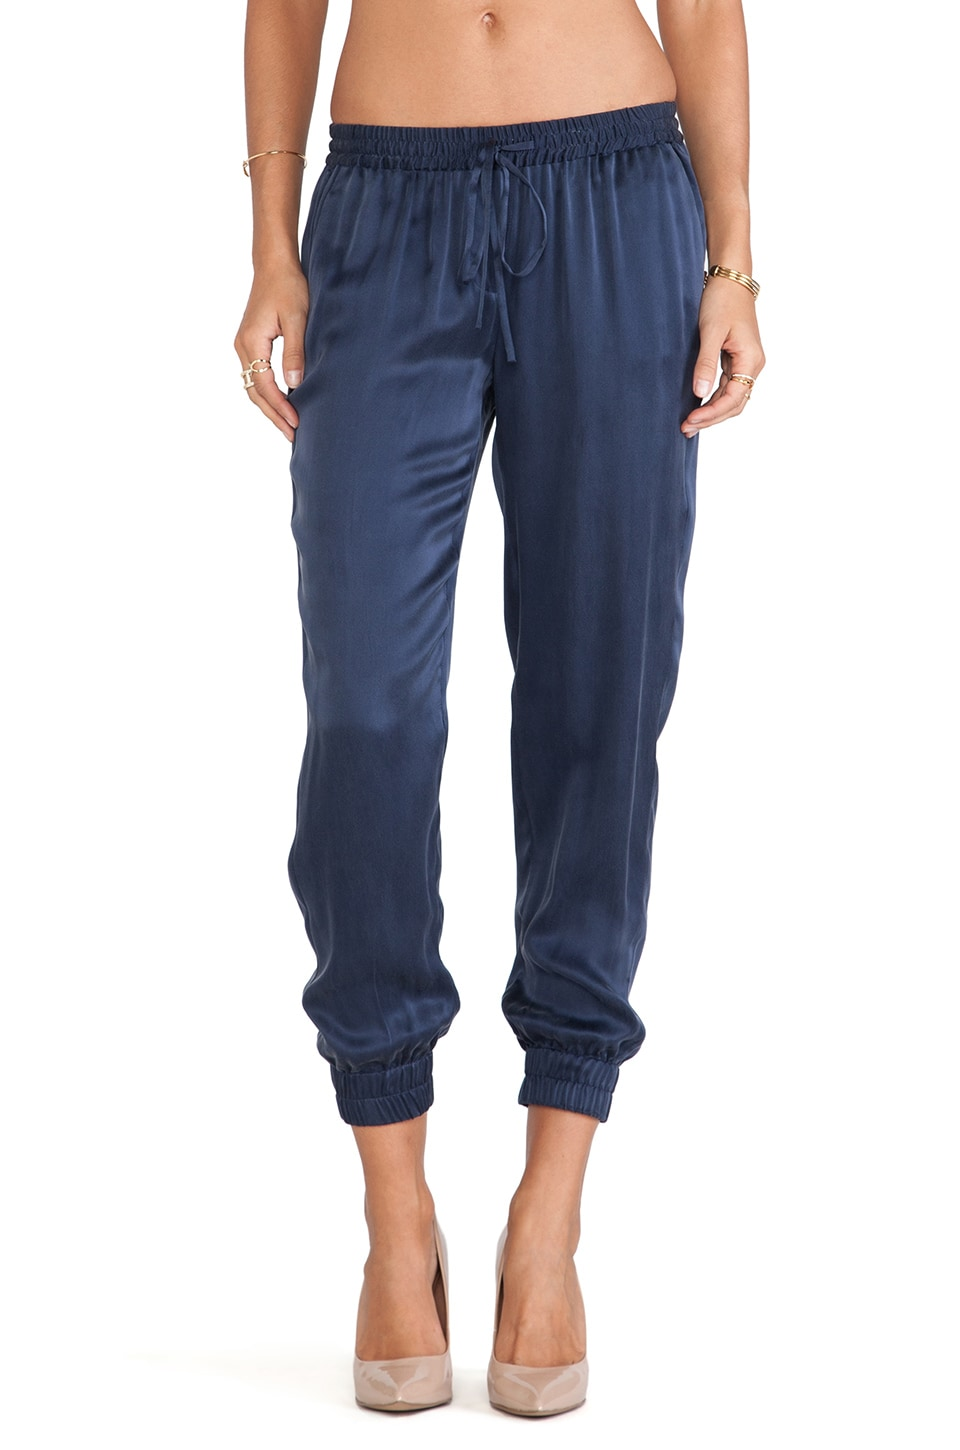 Paige Denim Jadyn Pant in Dark Ink Blue